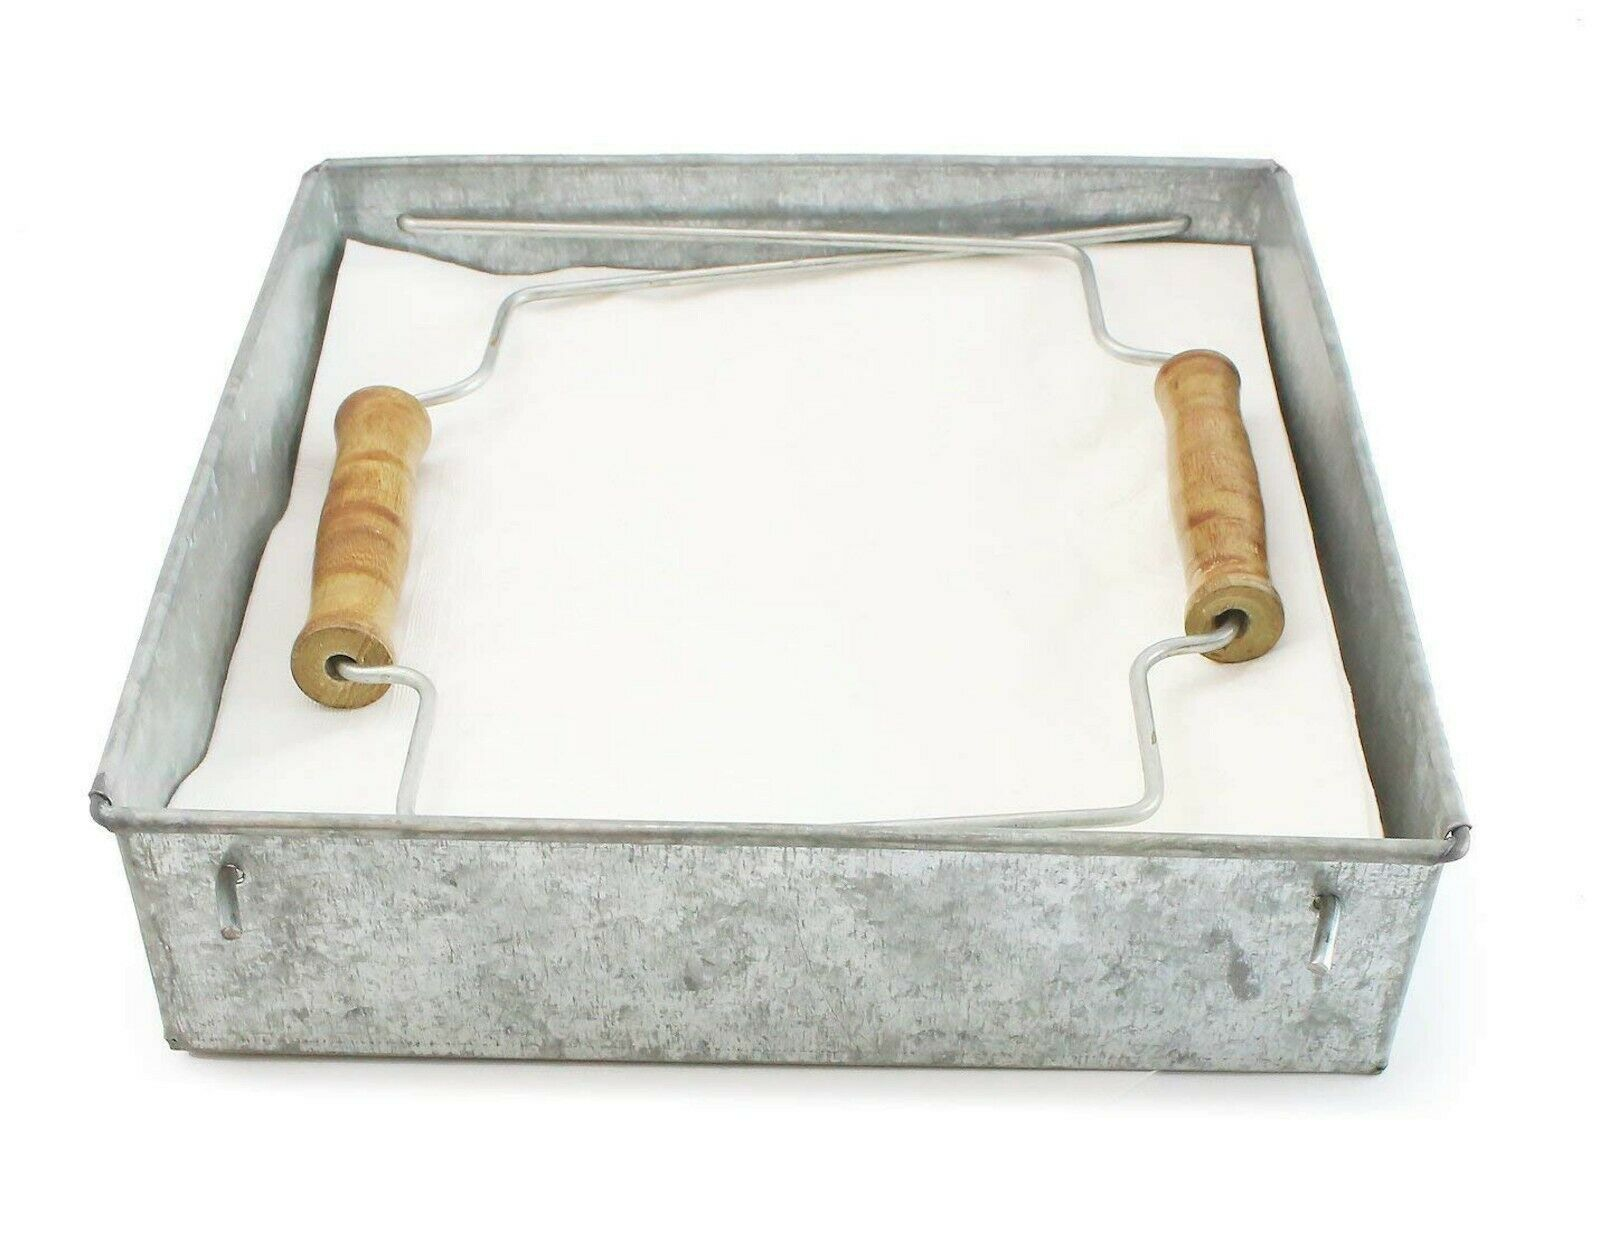 Rustic Farmhouse Metal Napkin Holder With Wood Handle Kitchen Dining Country